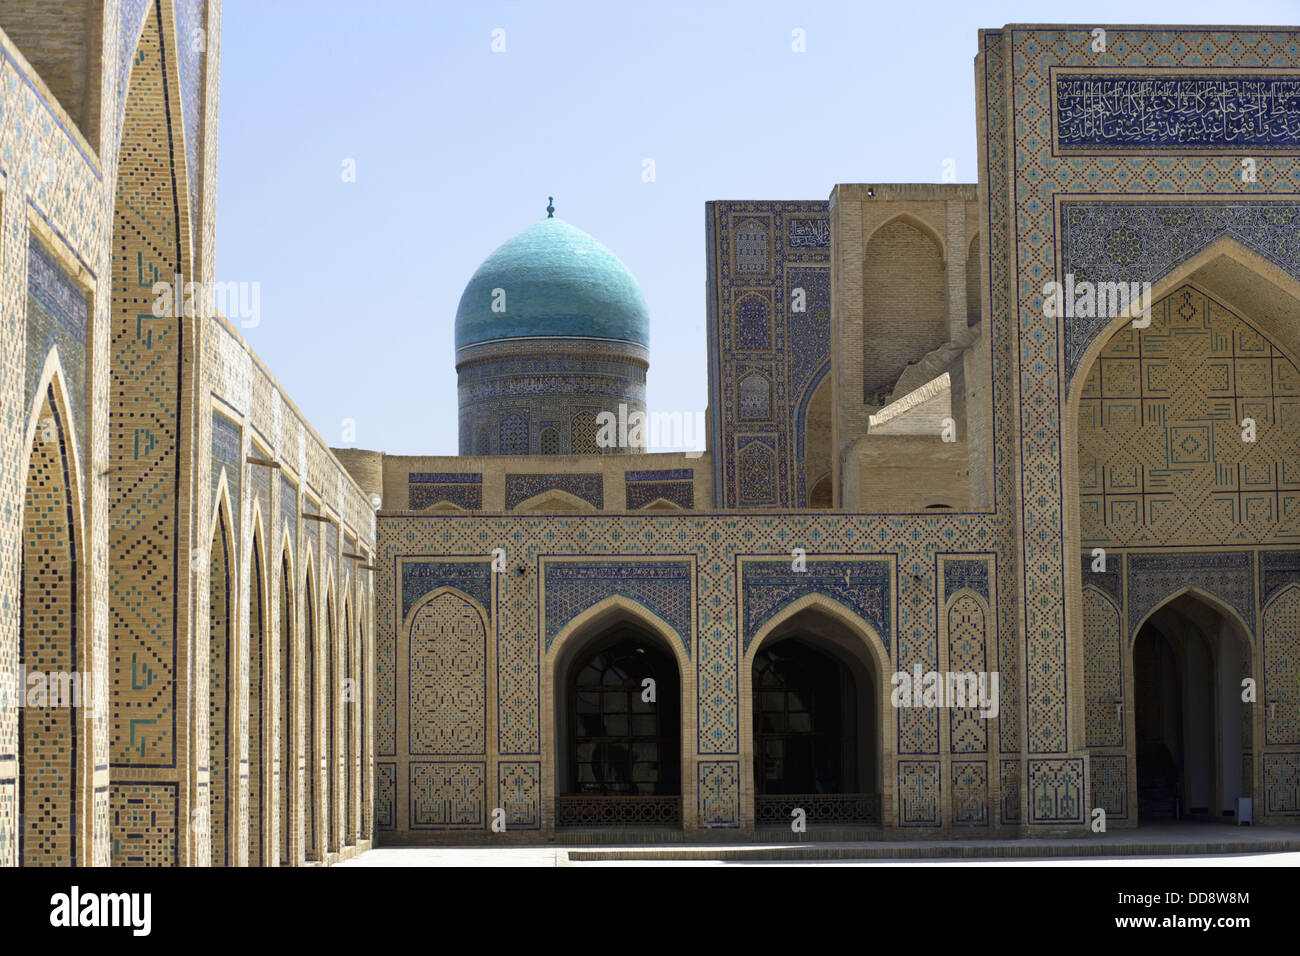 Inside Kalon Mosque With One Of The Turquoise Domes Mir